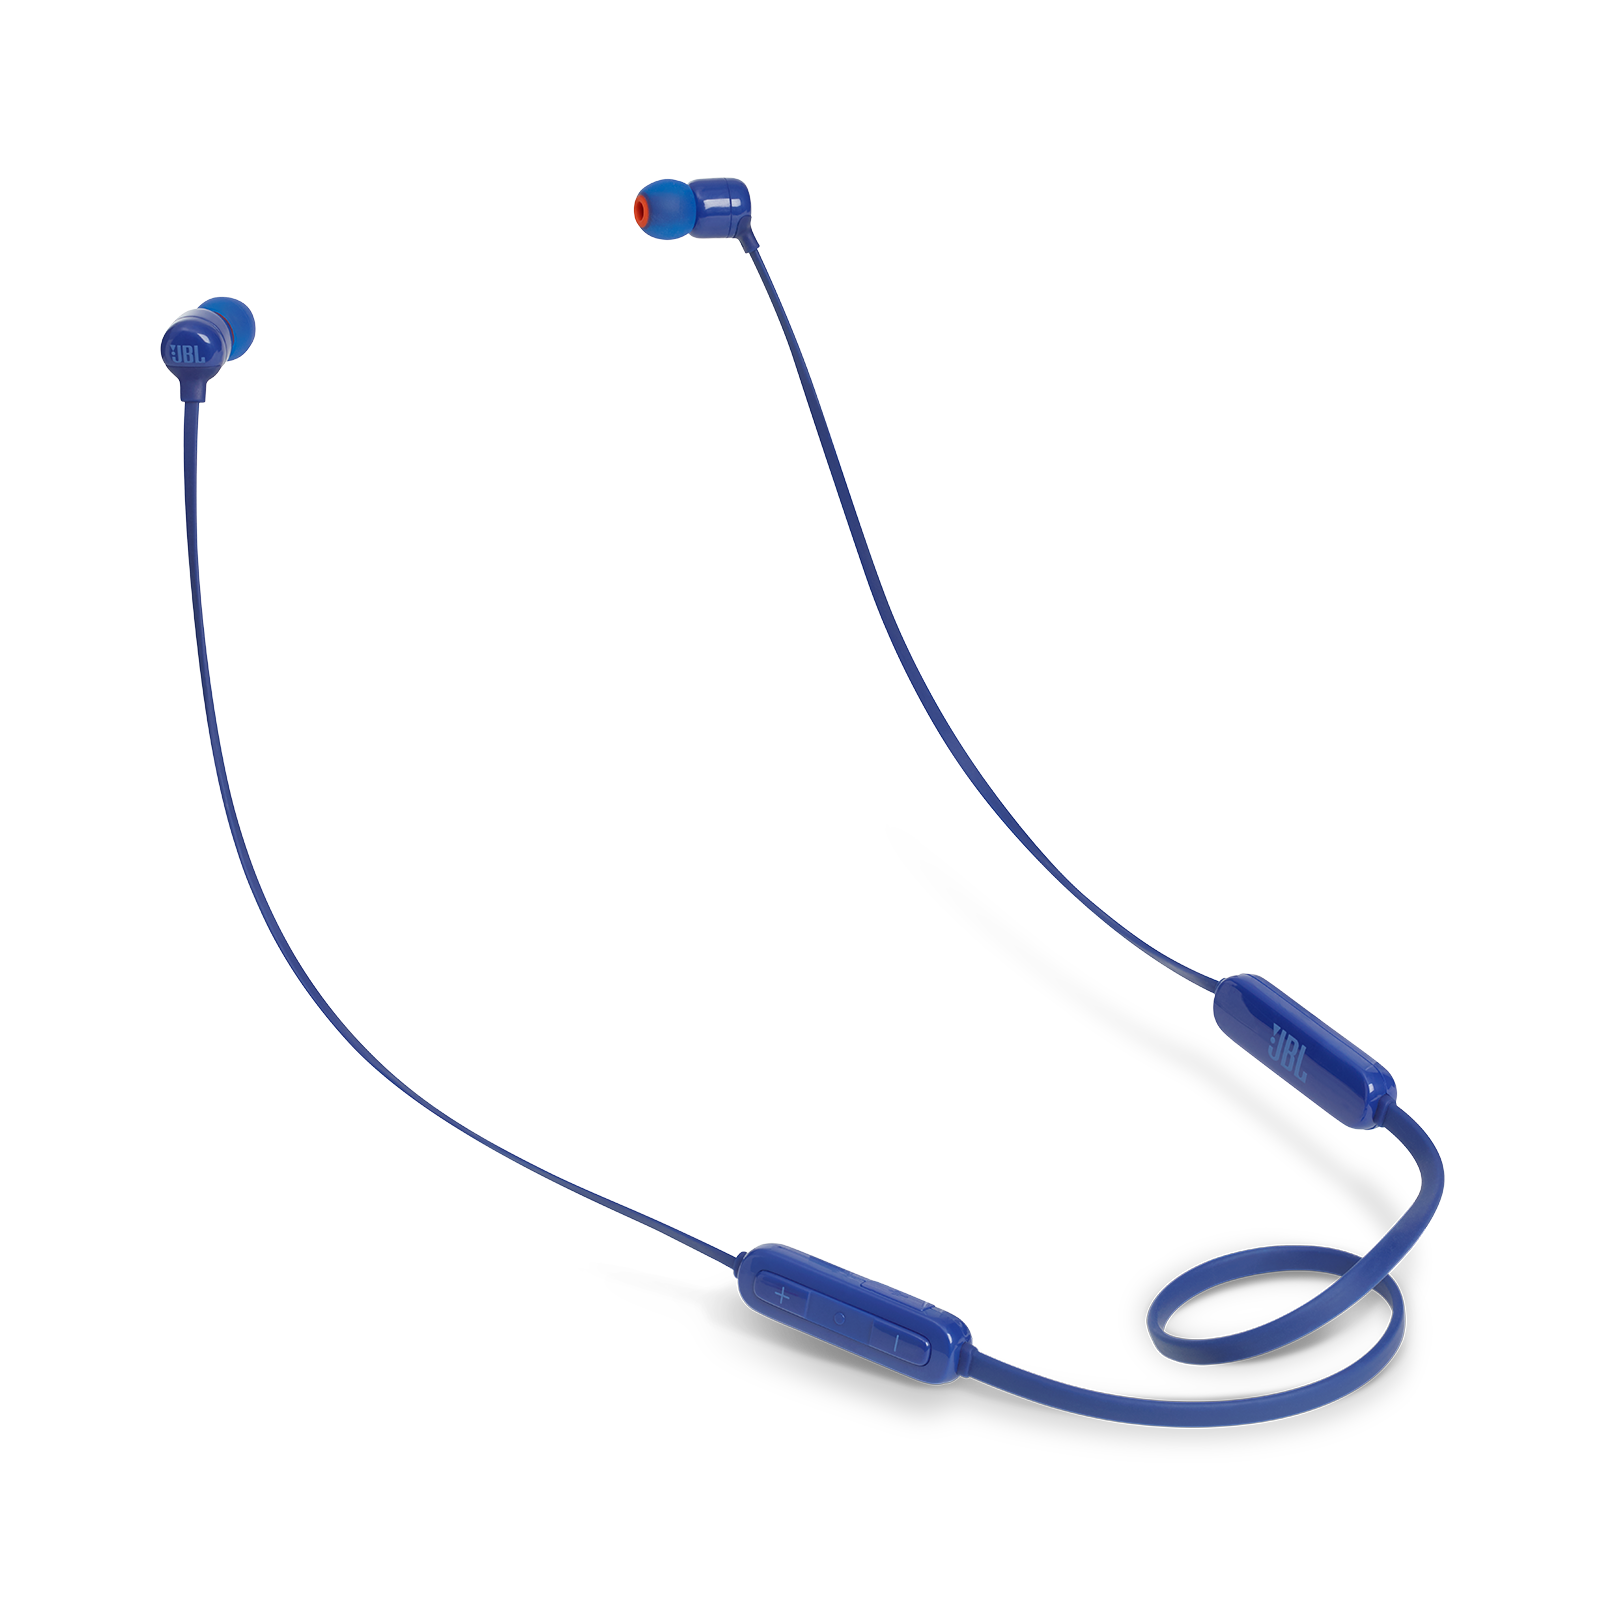 JBL TUNE 110BT - Blue - Wireless in-ear headphones - Hero